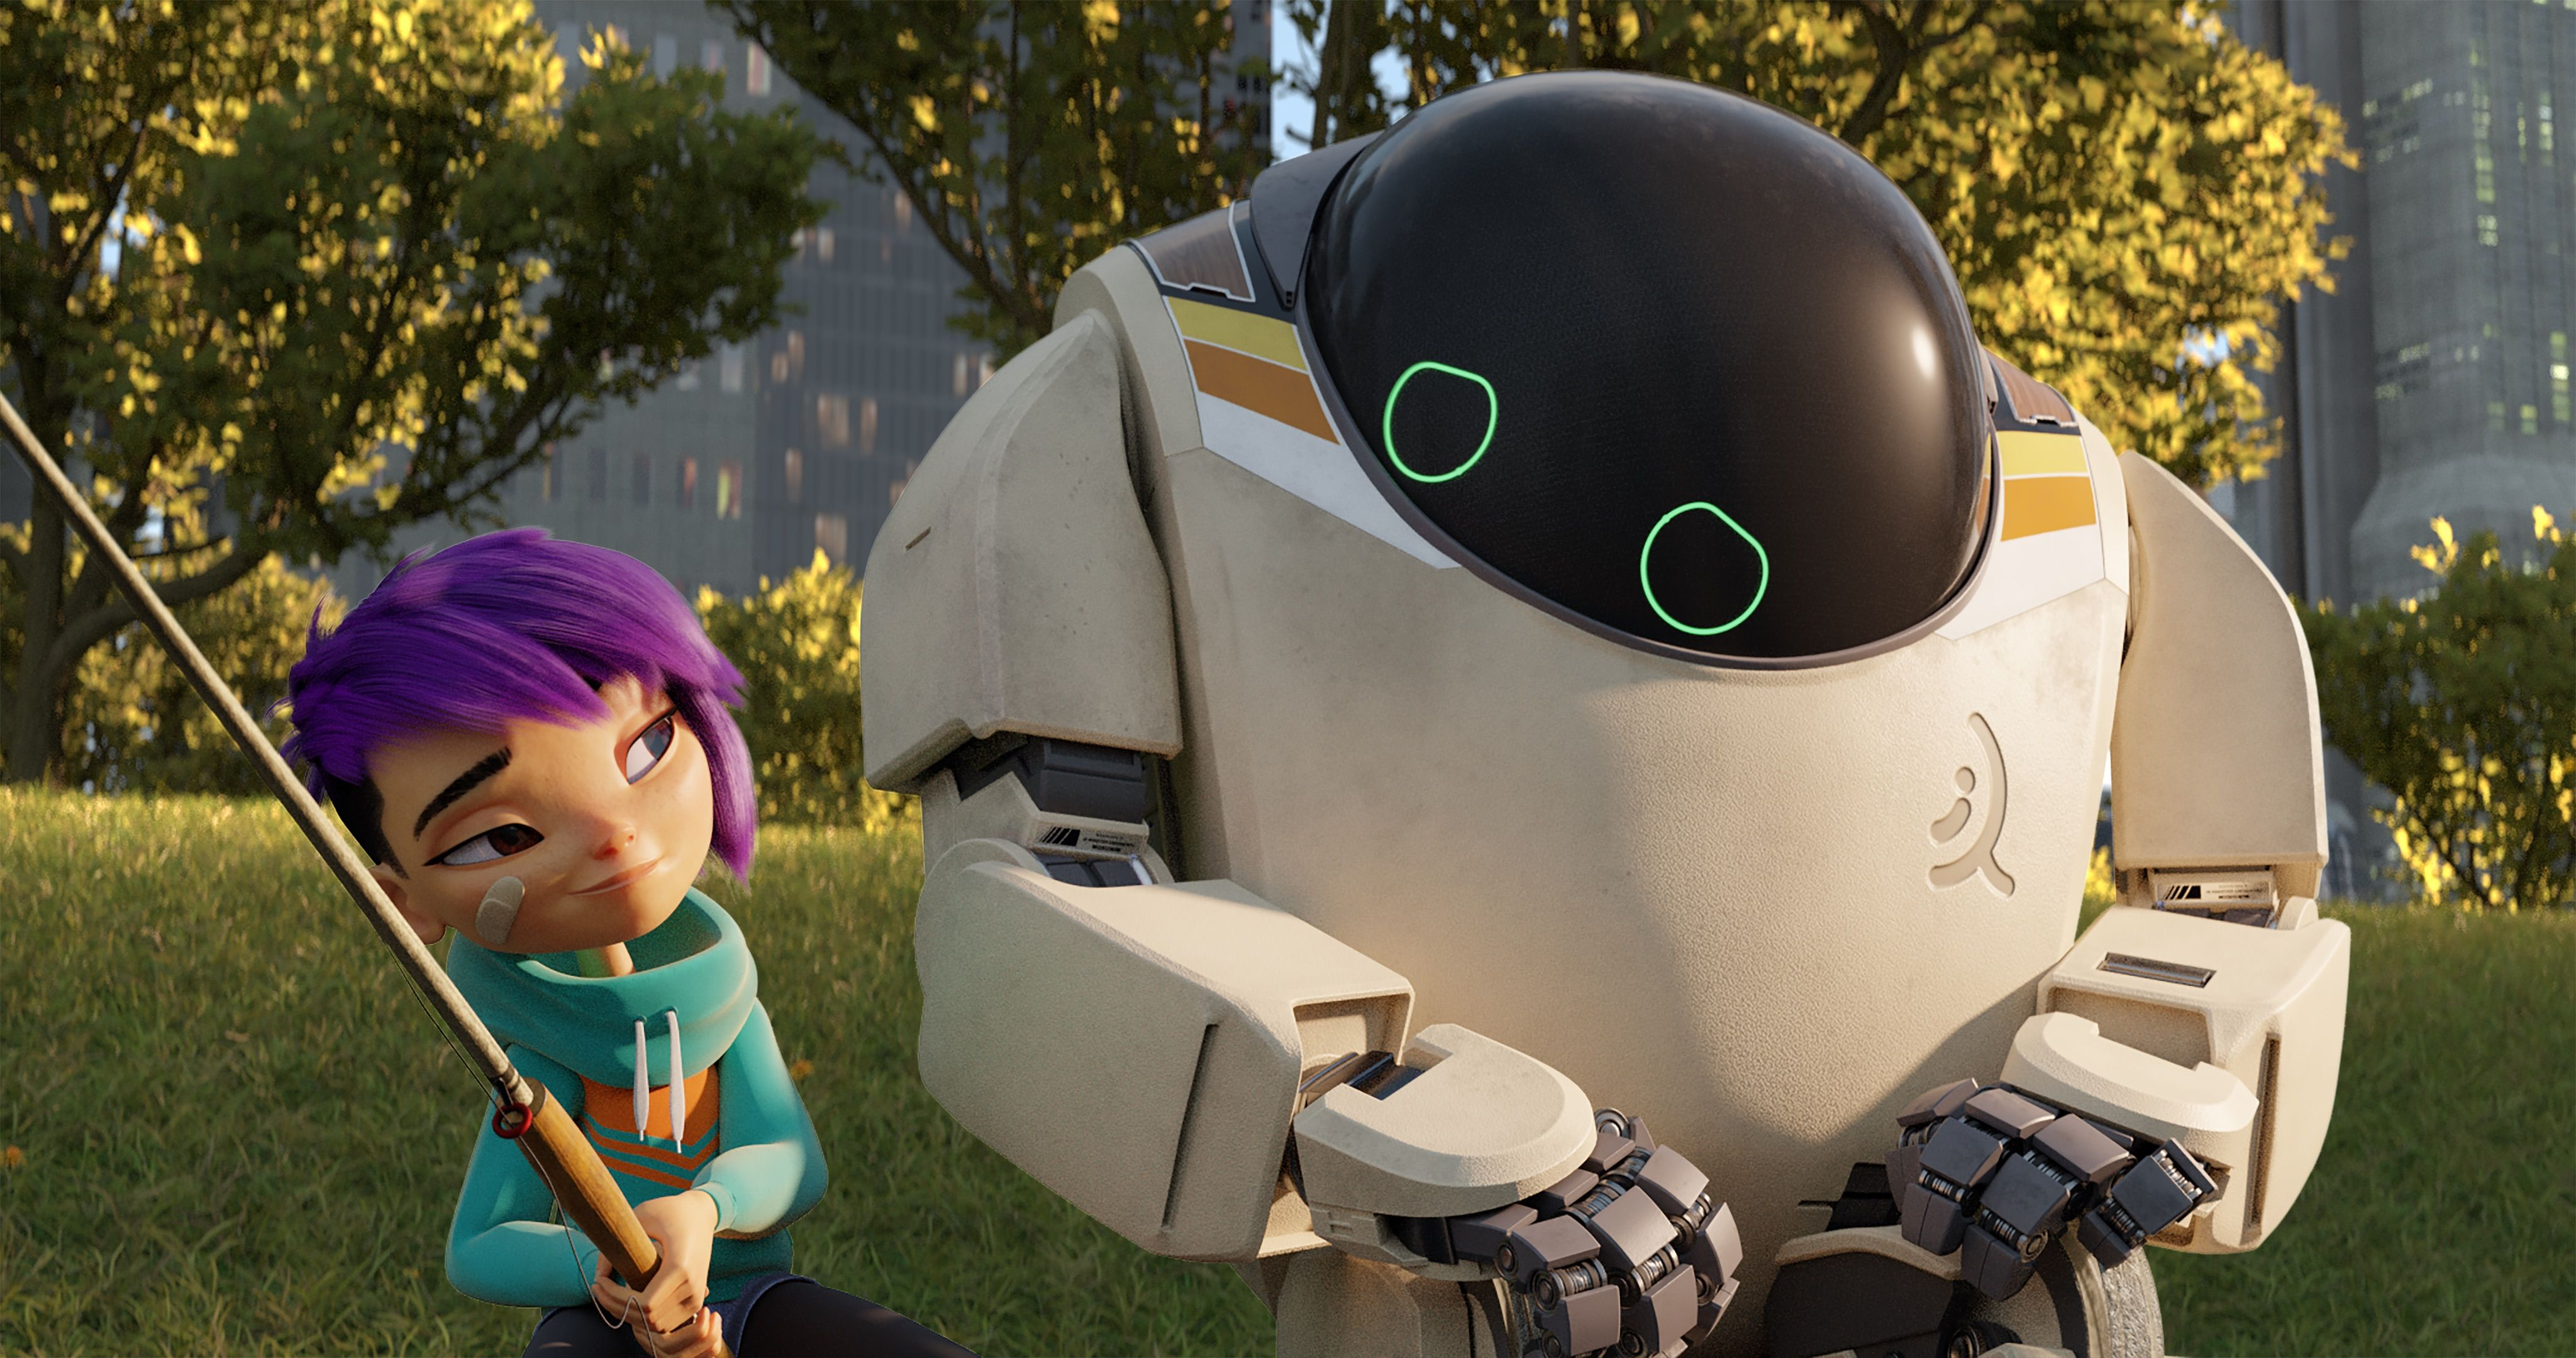 'Next Gen' Netflix's 30Million Animated Pickup Taps the